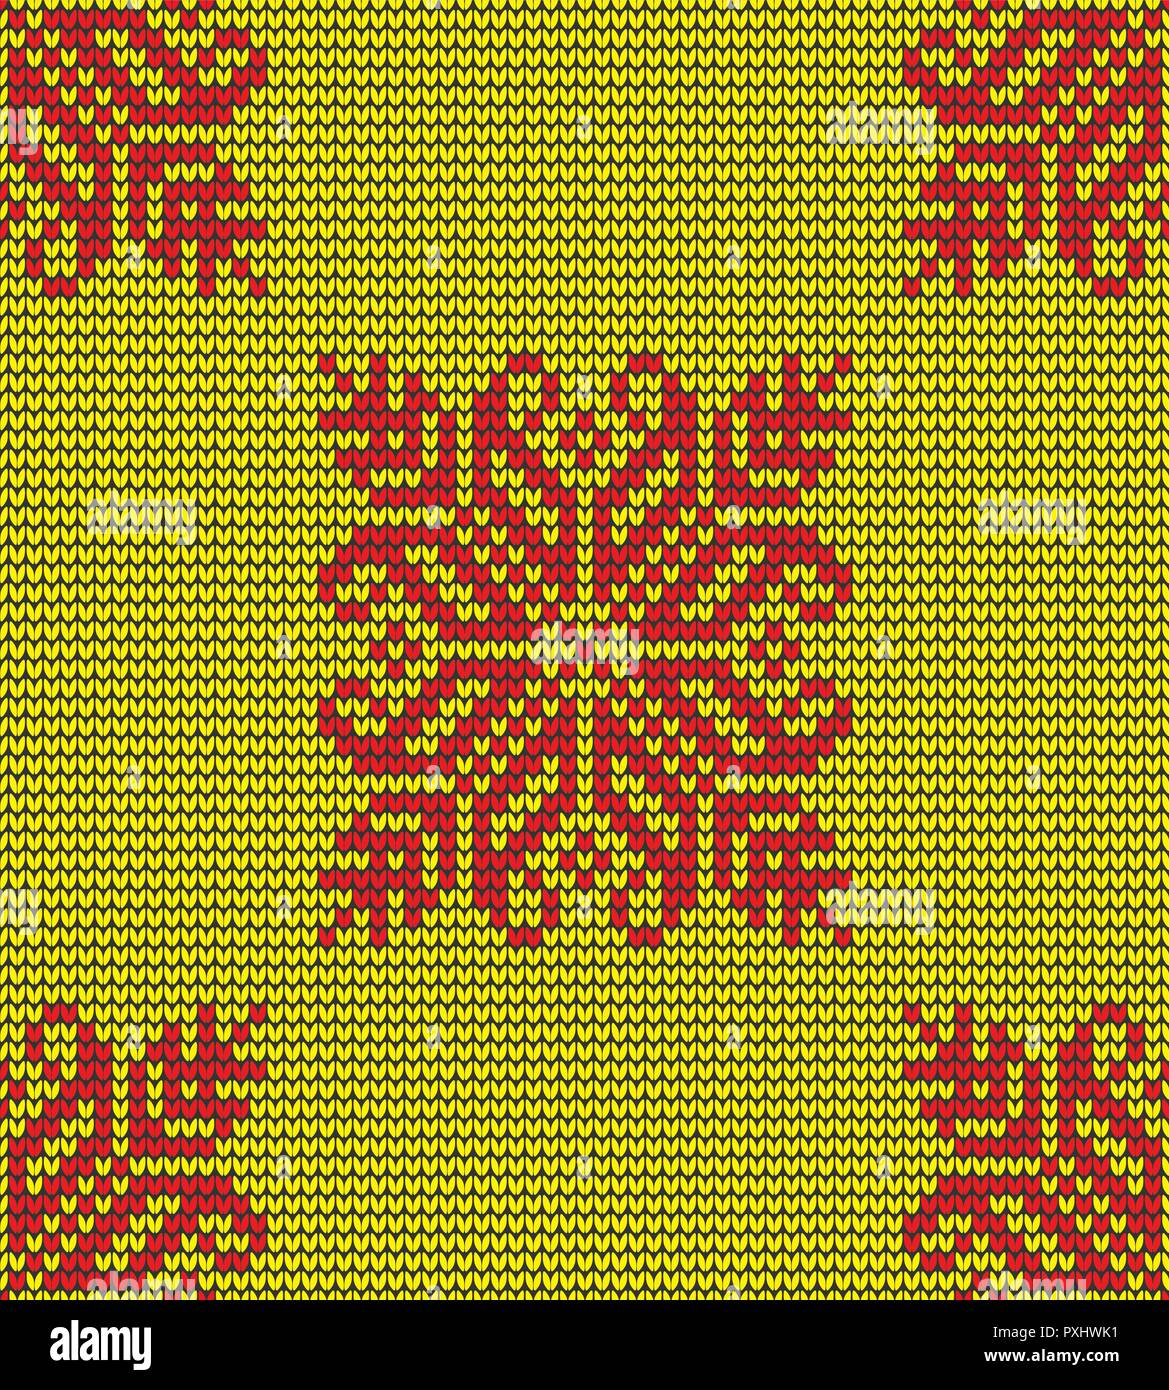 Abstract yellow and red seamless knitting pattern with penguins background - Stock Vector